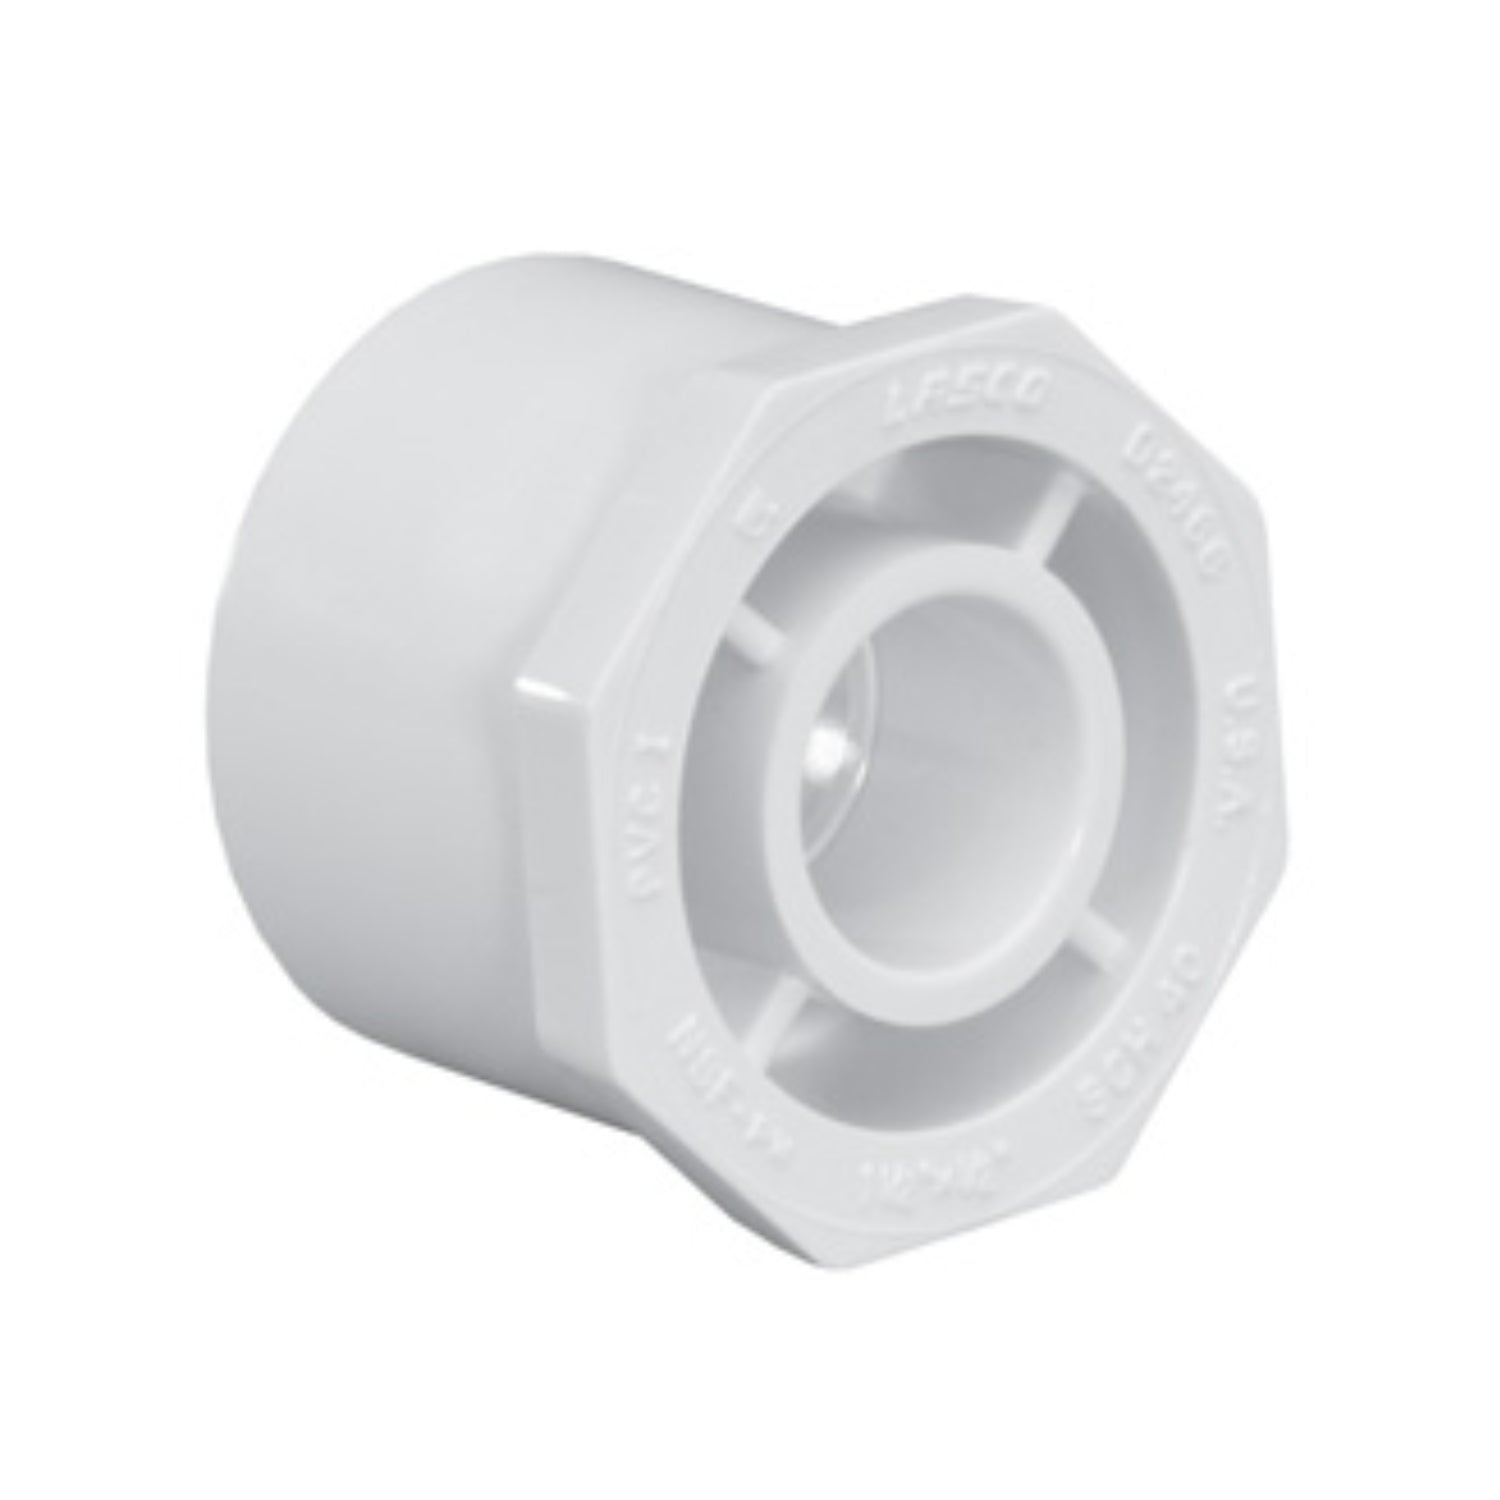 "Lasco - 437-166 - Reducer Bushing 1 1/4 x 1/2"" (Slip)"